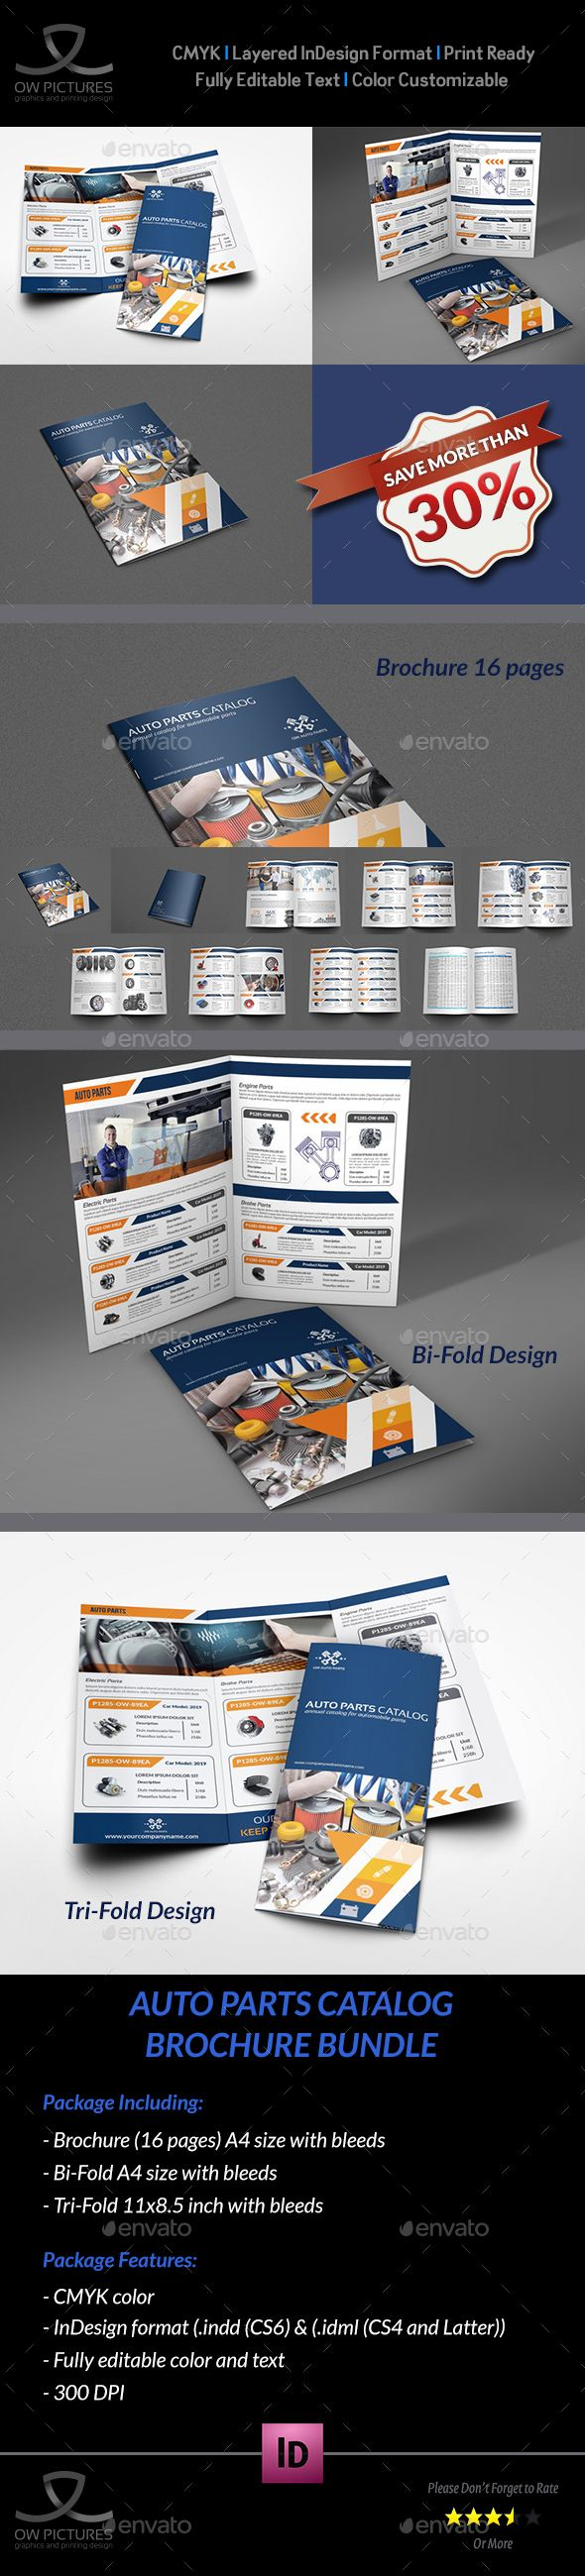 Auto Parts Catalog Brochure Bundle #Template Vol.2 - Catalogs #Brochures Download here: https://graphicriver.net/item/auto-parts-catalog-brochure-bundle-template-vol2/19328014?ref=alena994